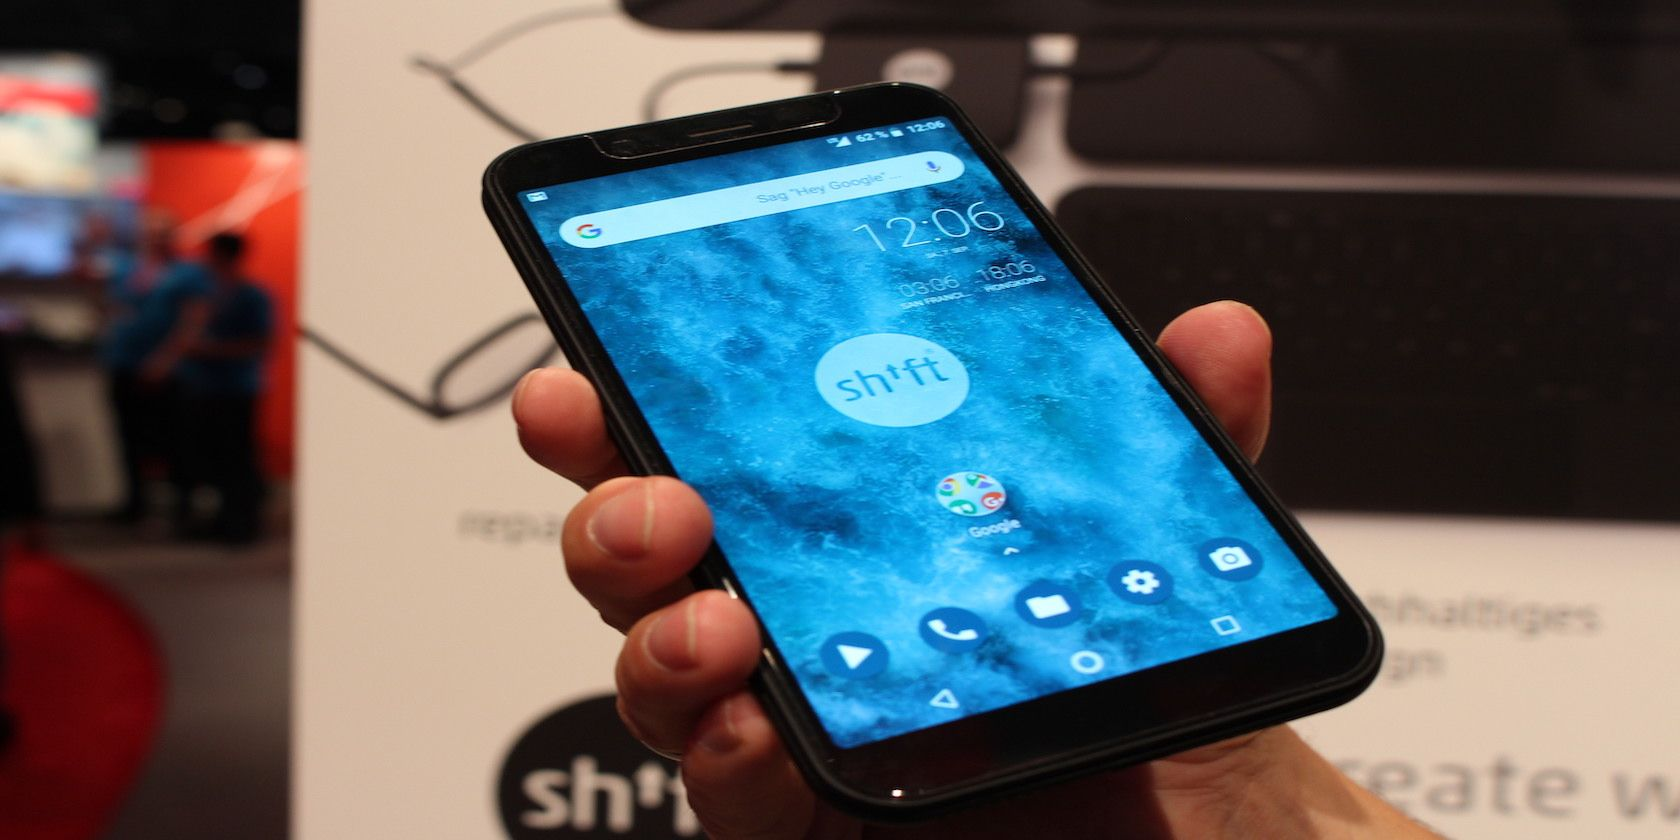 Shiftphone: Sustainable, Ethical & Eco-Friendly Smartphones